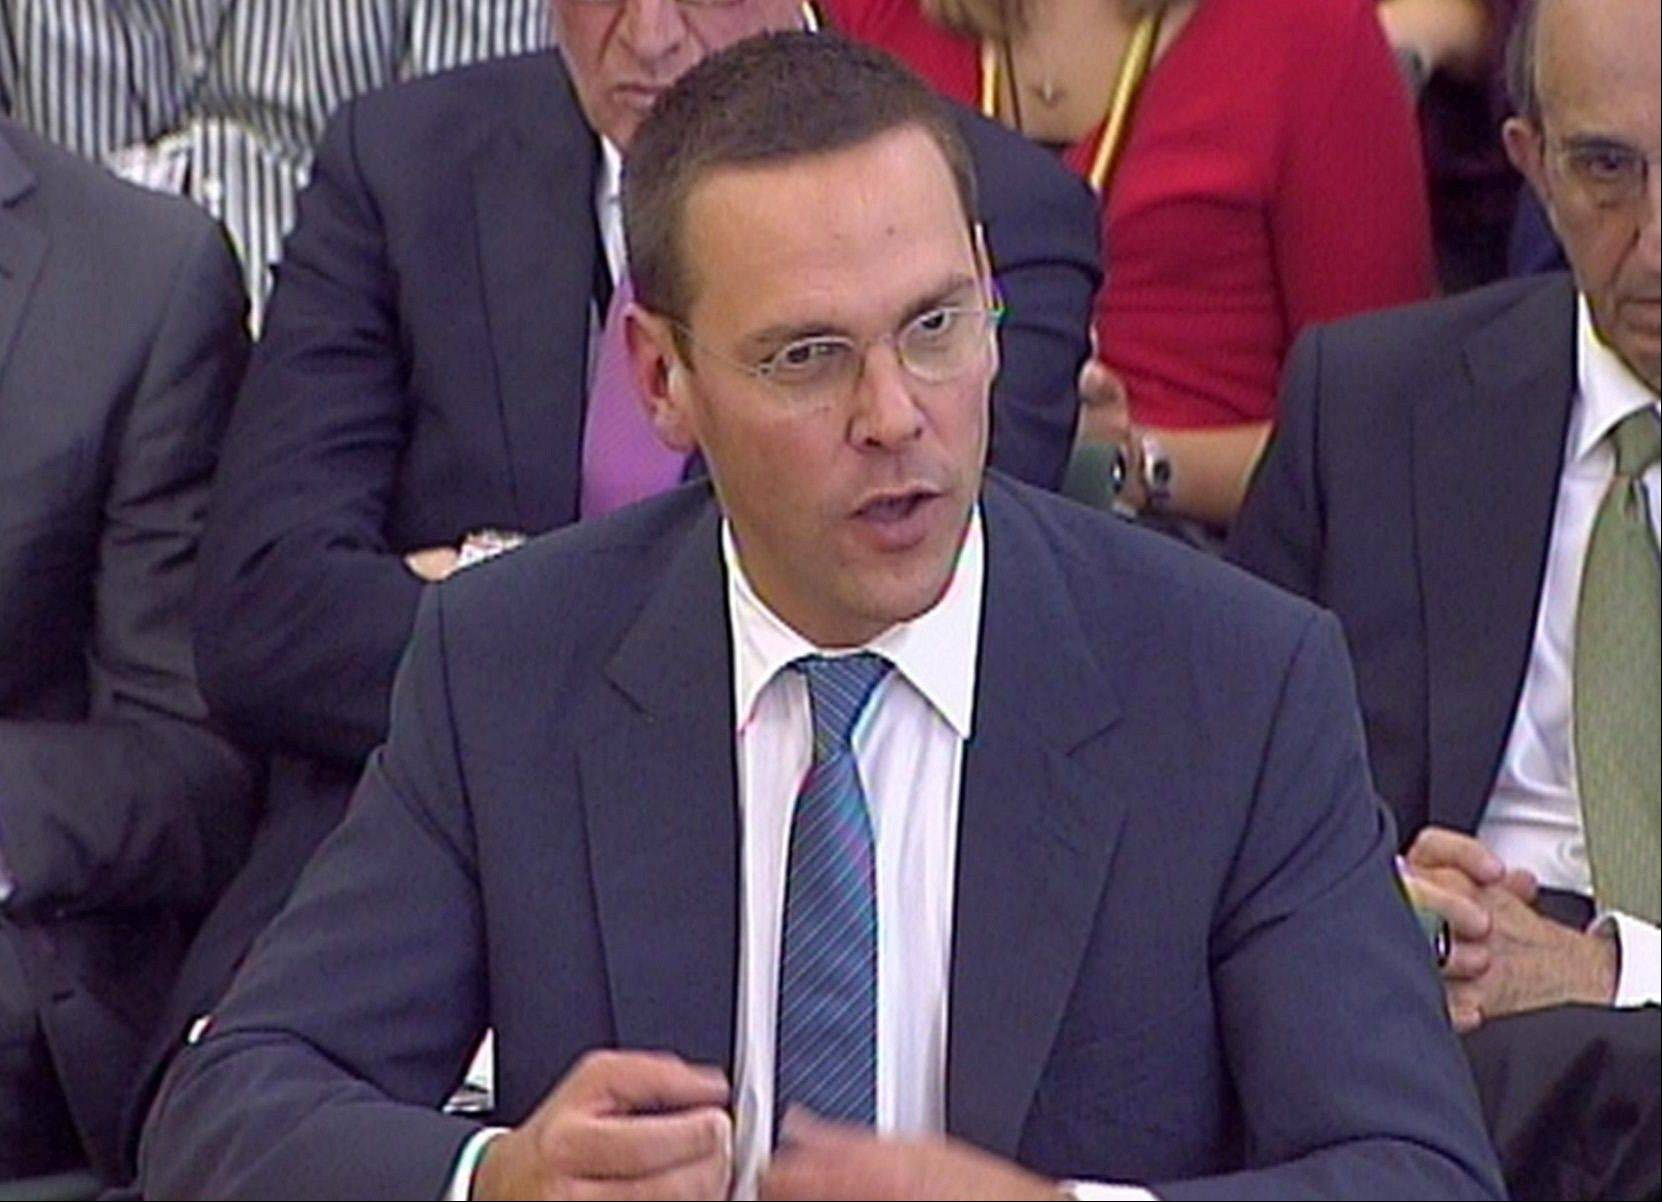 James Murdoch had said he stood by his testimony but would provide a written response to follow-up questions.